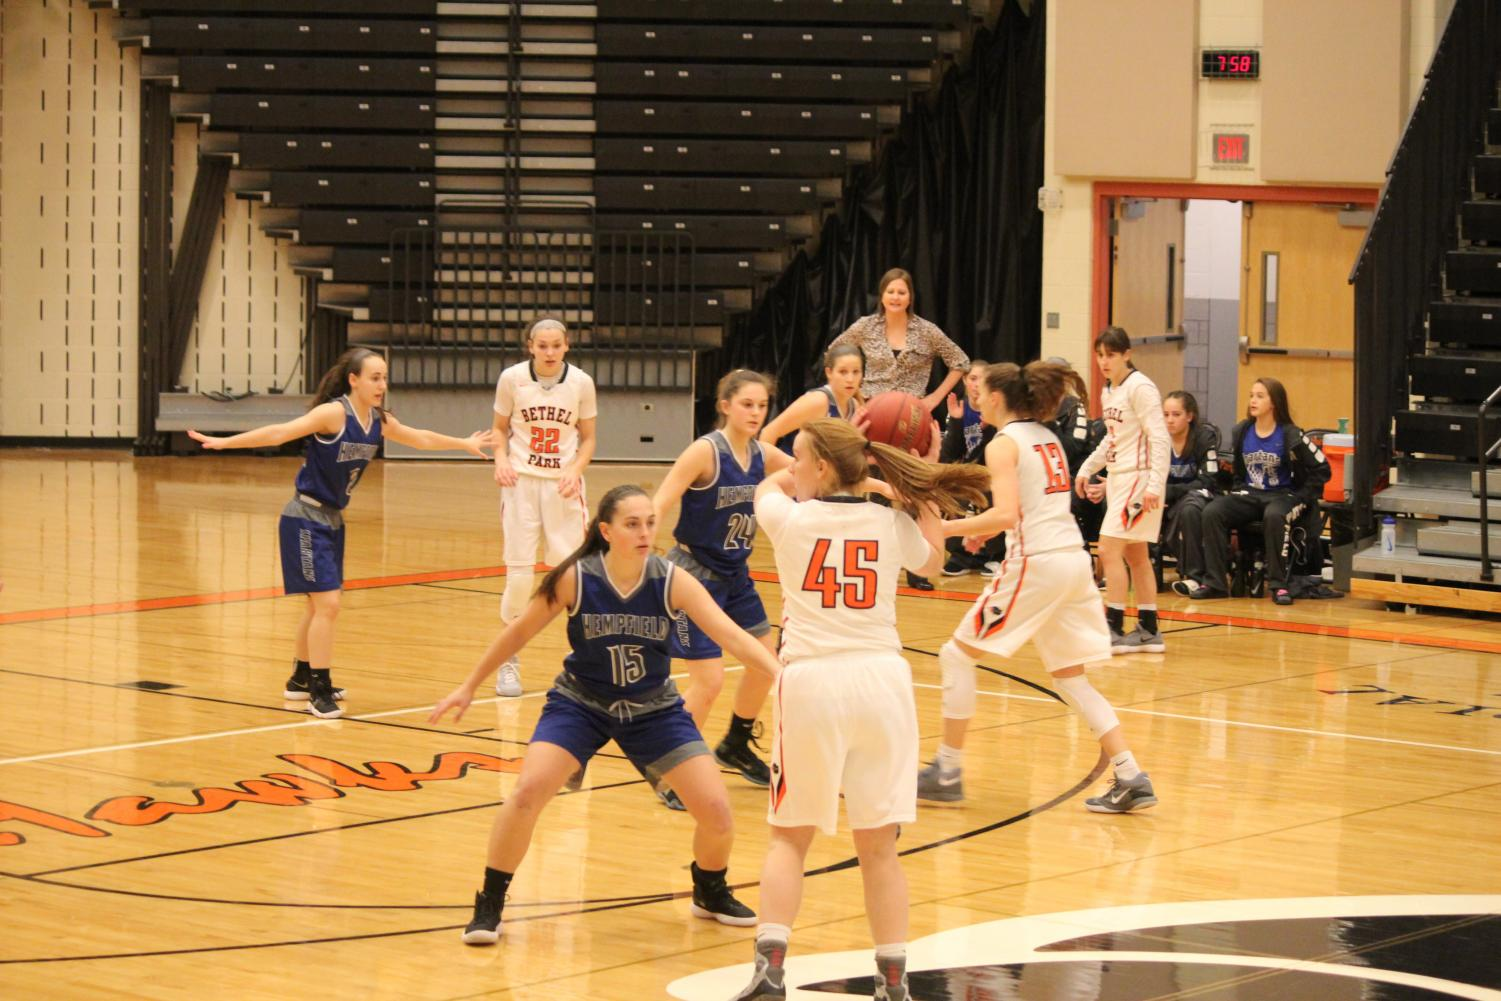 Lady Hawks look to make a play against Hempfield during their first game of the Tip-Off Tournament Friday, Dec. 8.